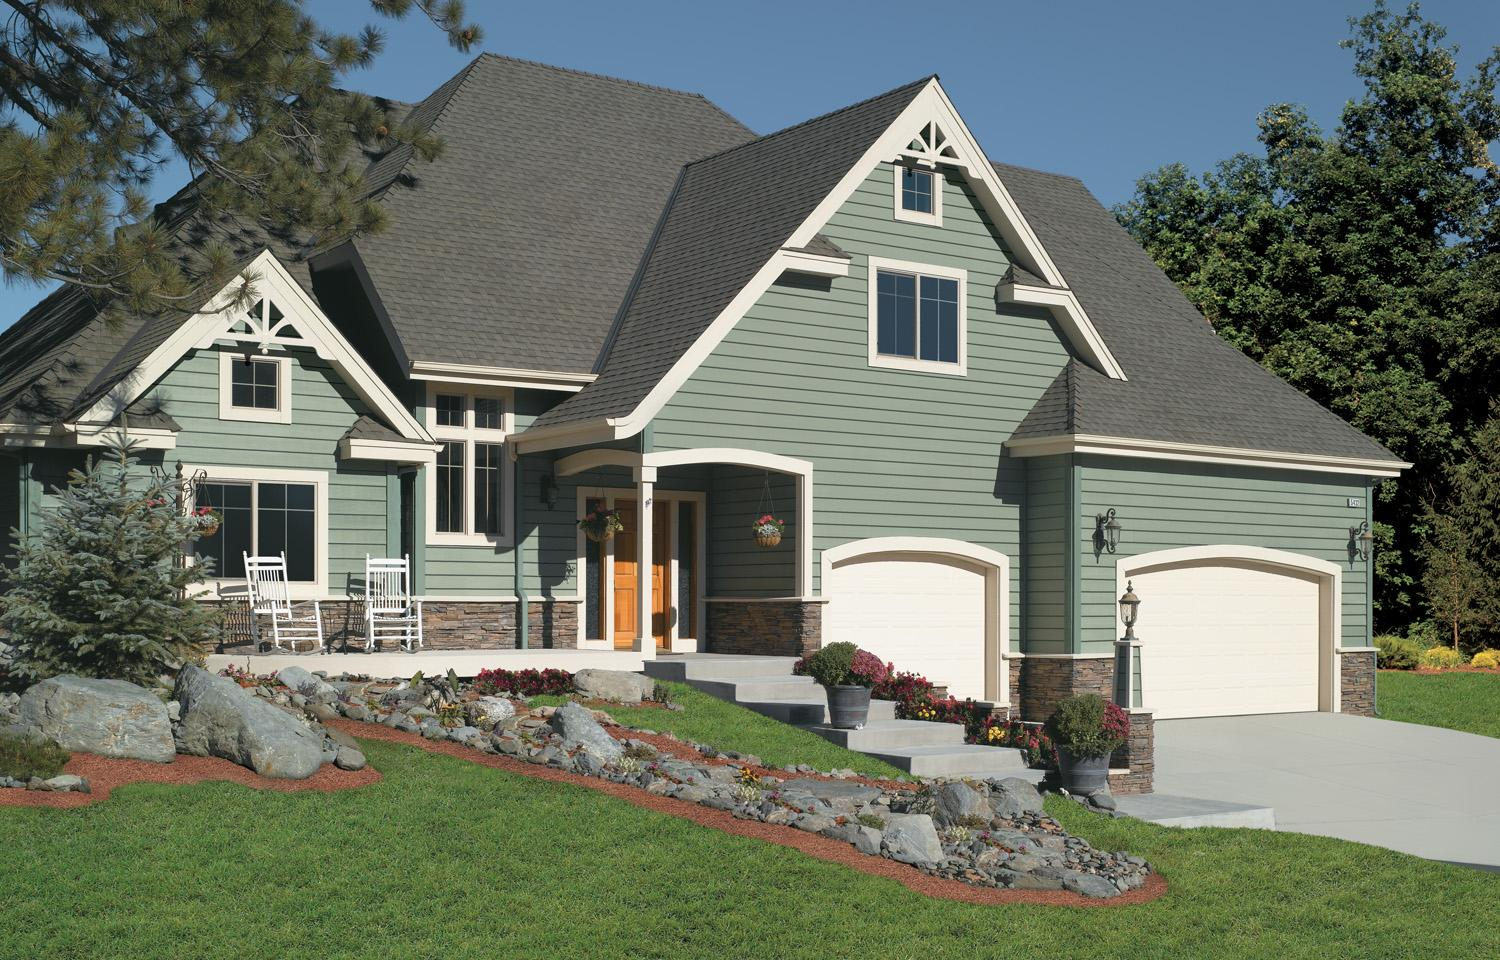 4 types of fiber cement siding for your home pros and cons for Types of siding